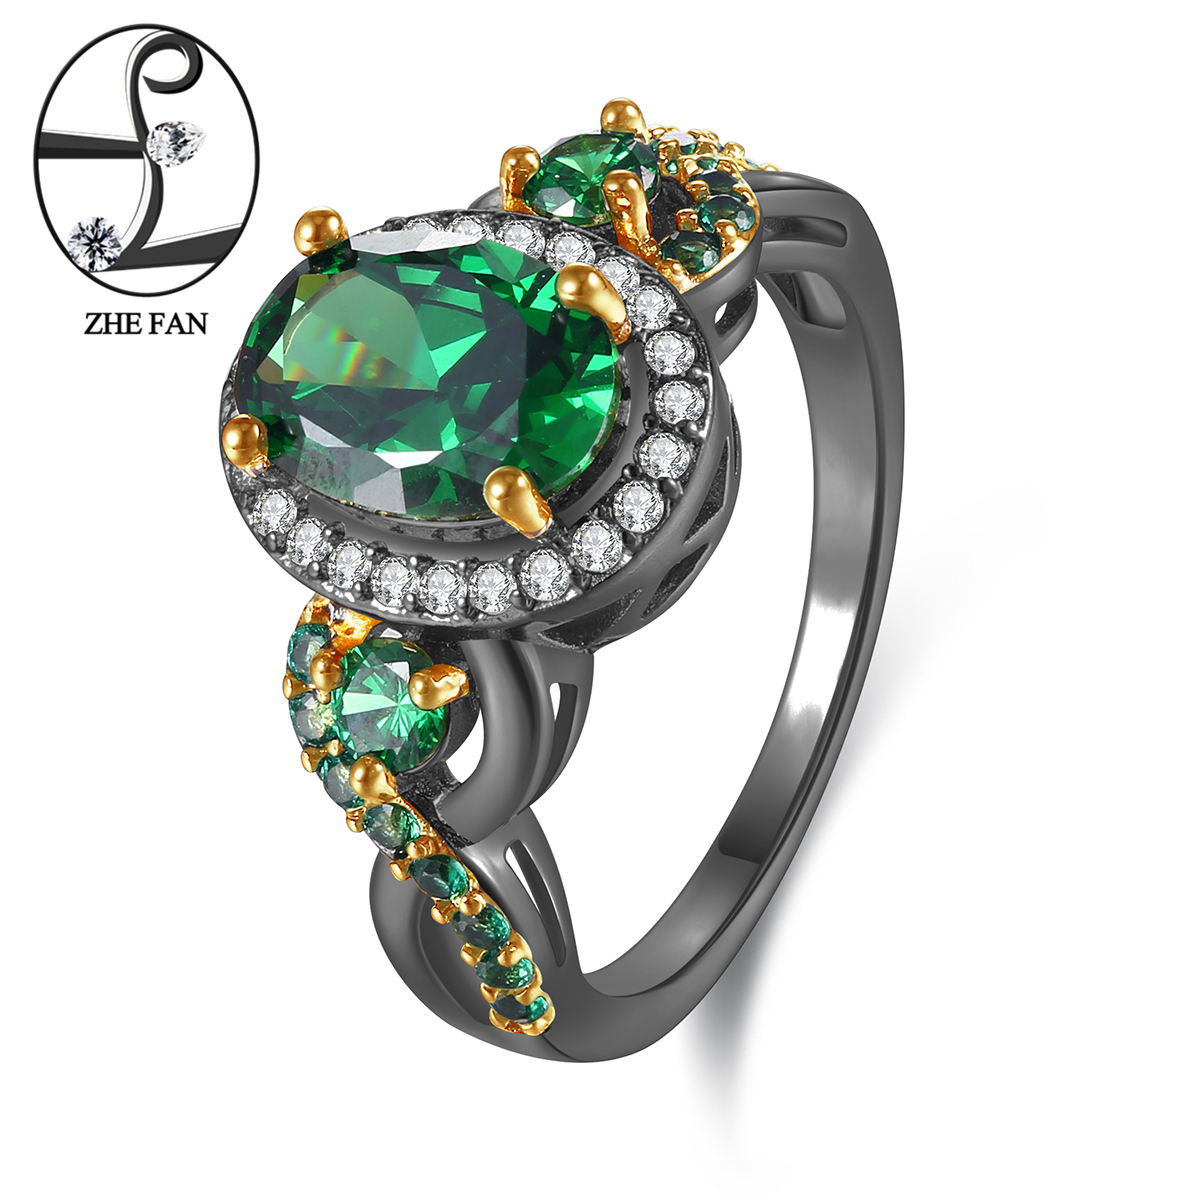 ZHE FAN Cubic Zirconia Engagement Ring Women Oval Green Stone Black Gold Color Plating Luxury Jewelry Female Gift